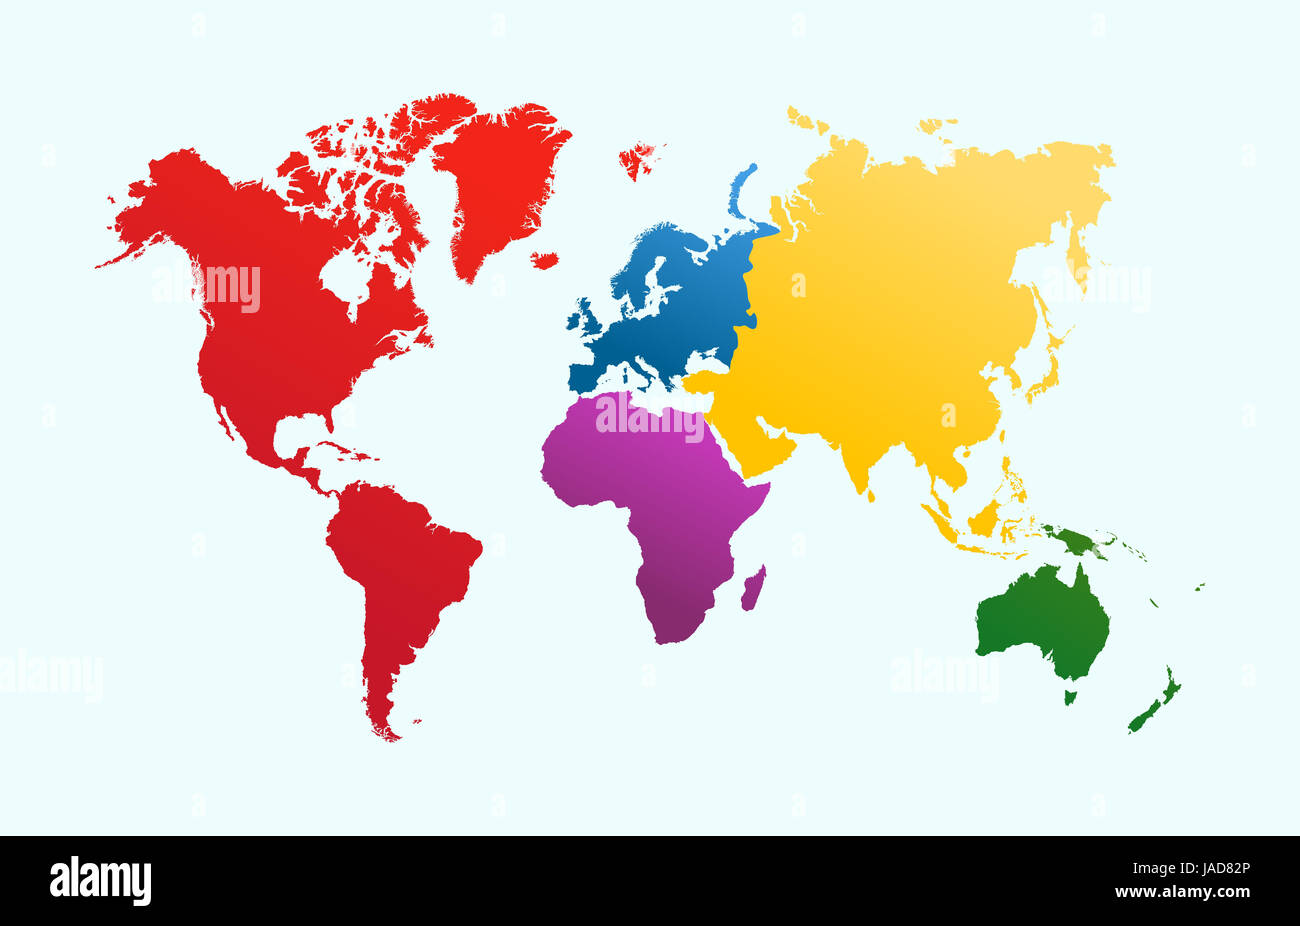 World map colorful continents atlas illustration eps10 vector file world map colorful continents atlas illustration eps10 vector file organized in layersa for easy editing gumiabroncs Images